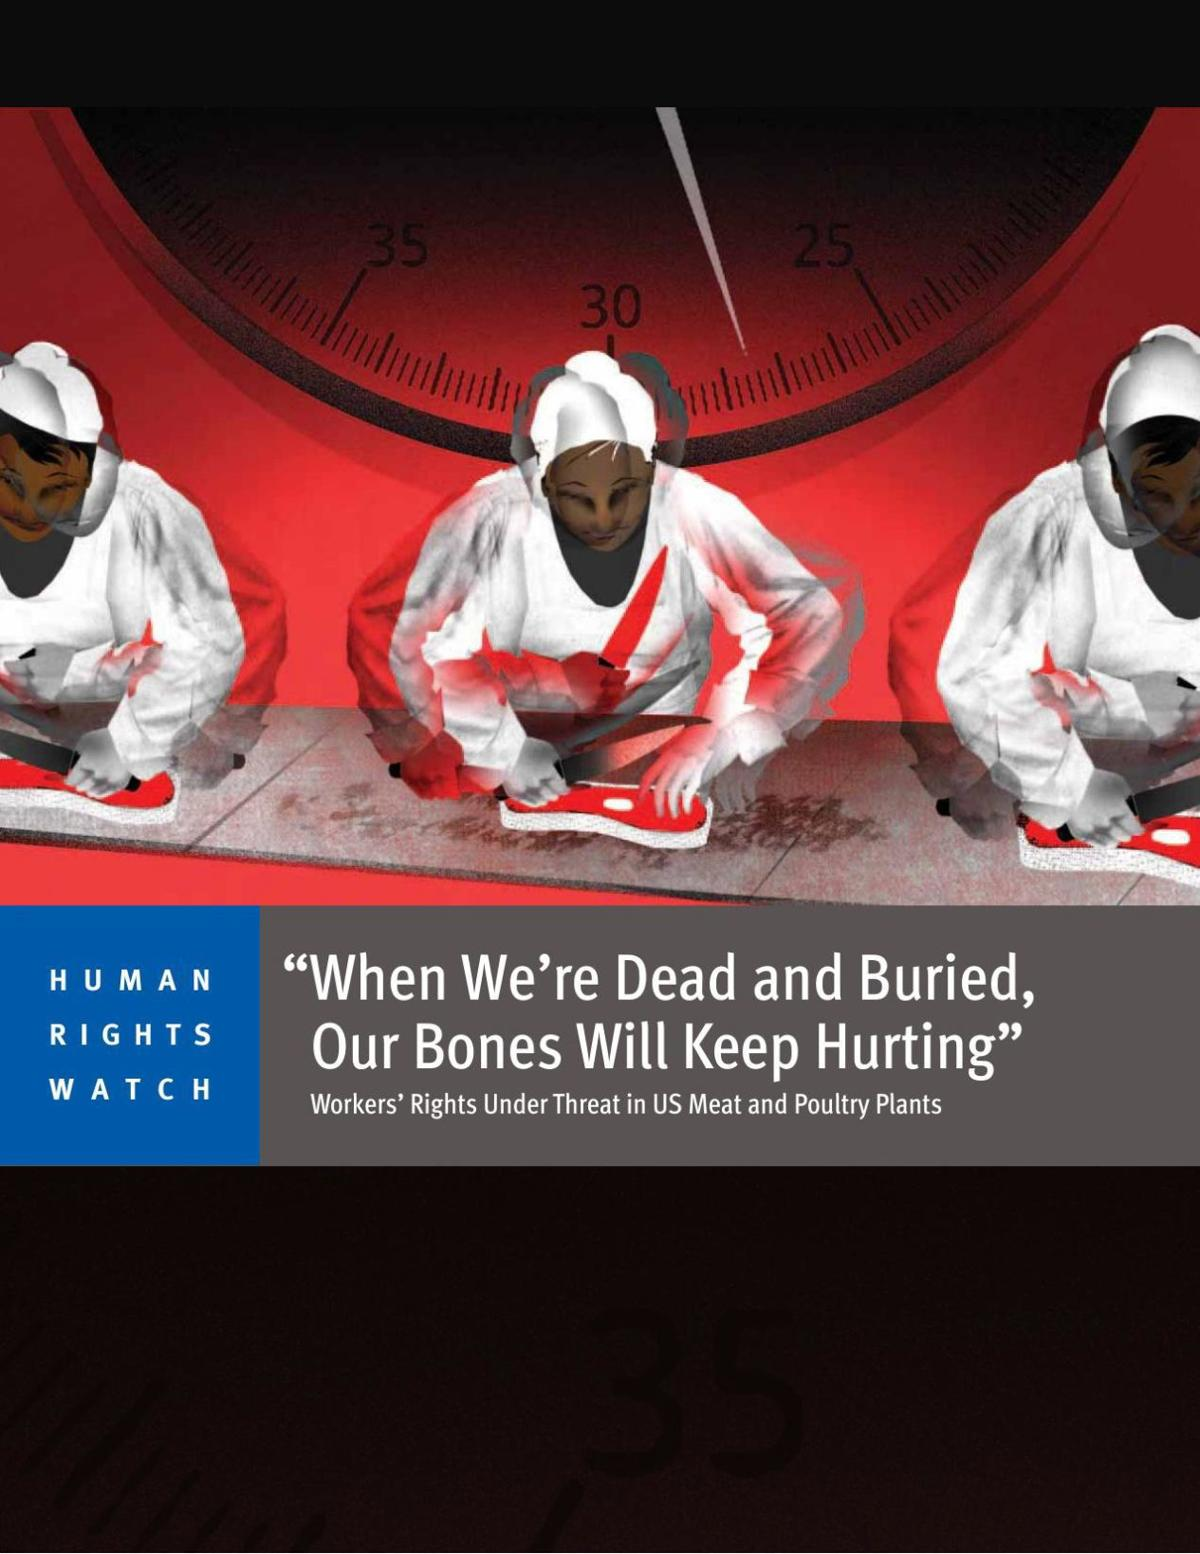 Human Rights Watch report on meat processing